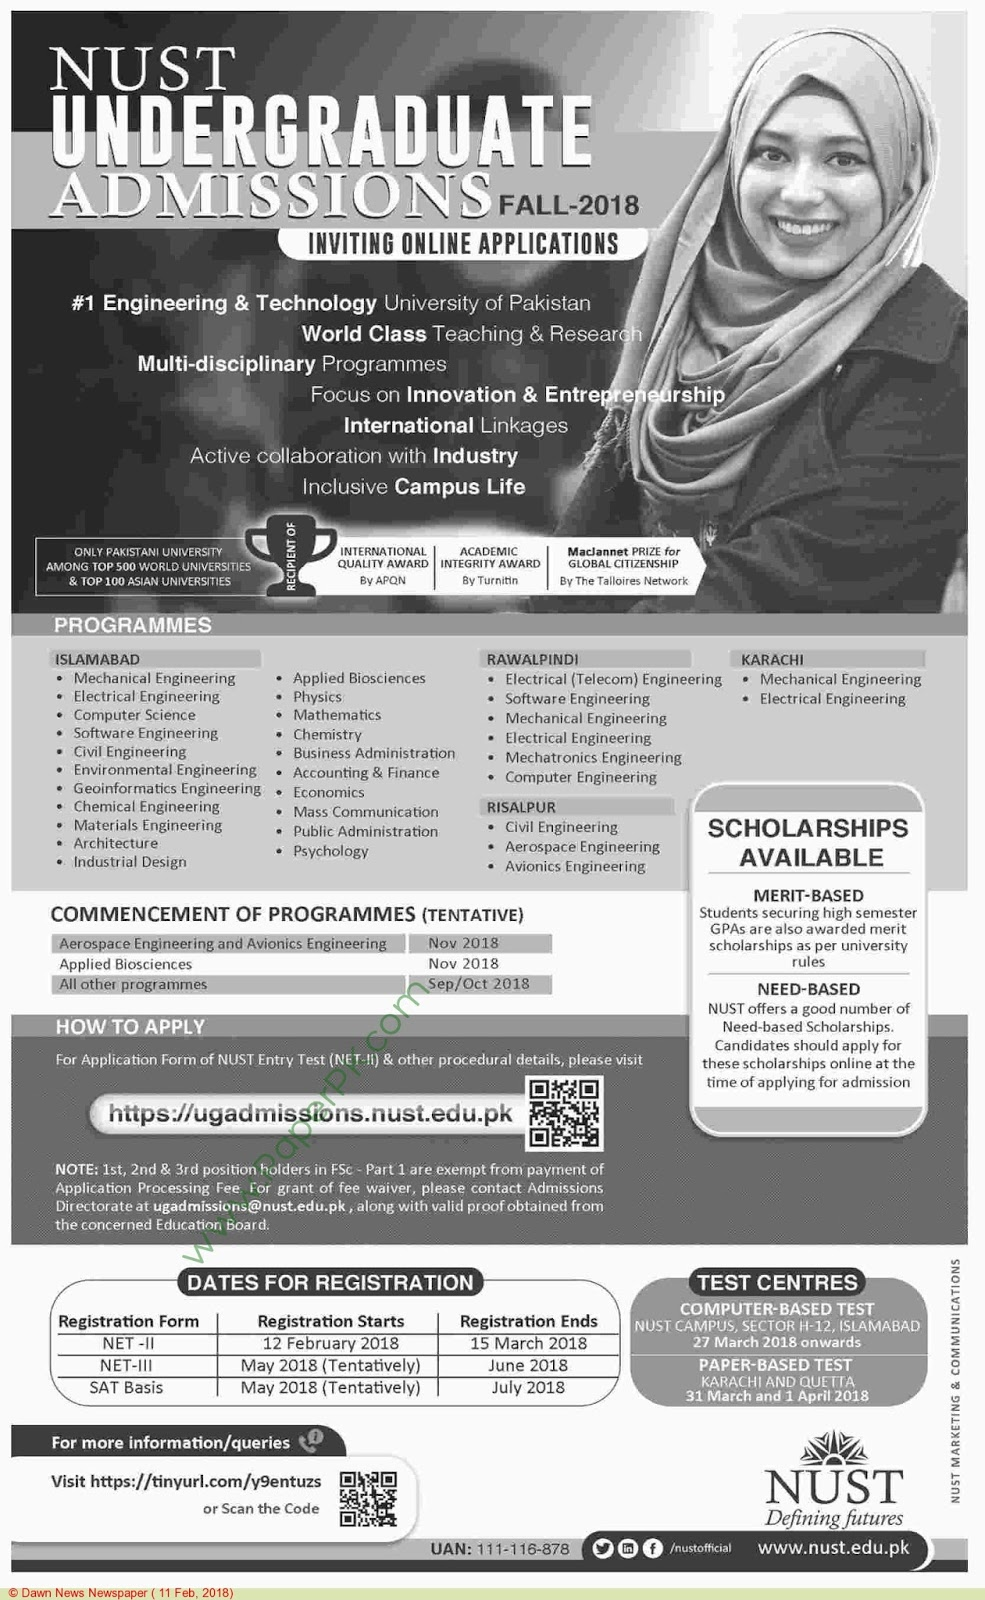 NUST University Admissions Open Fall 2018 - Computer Zila